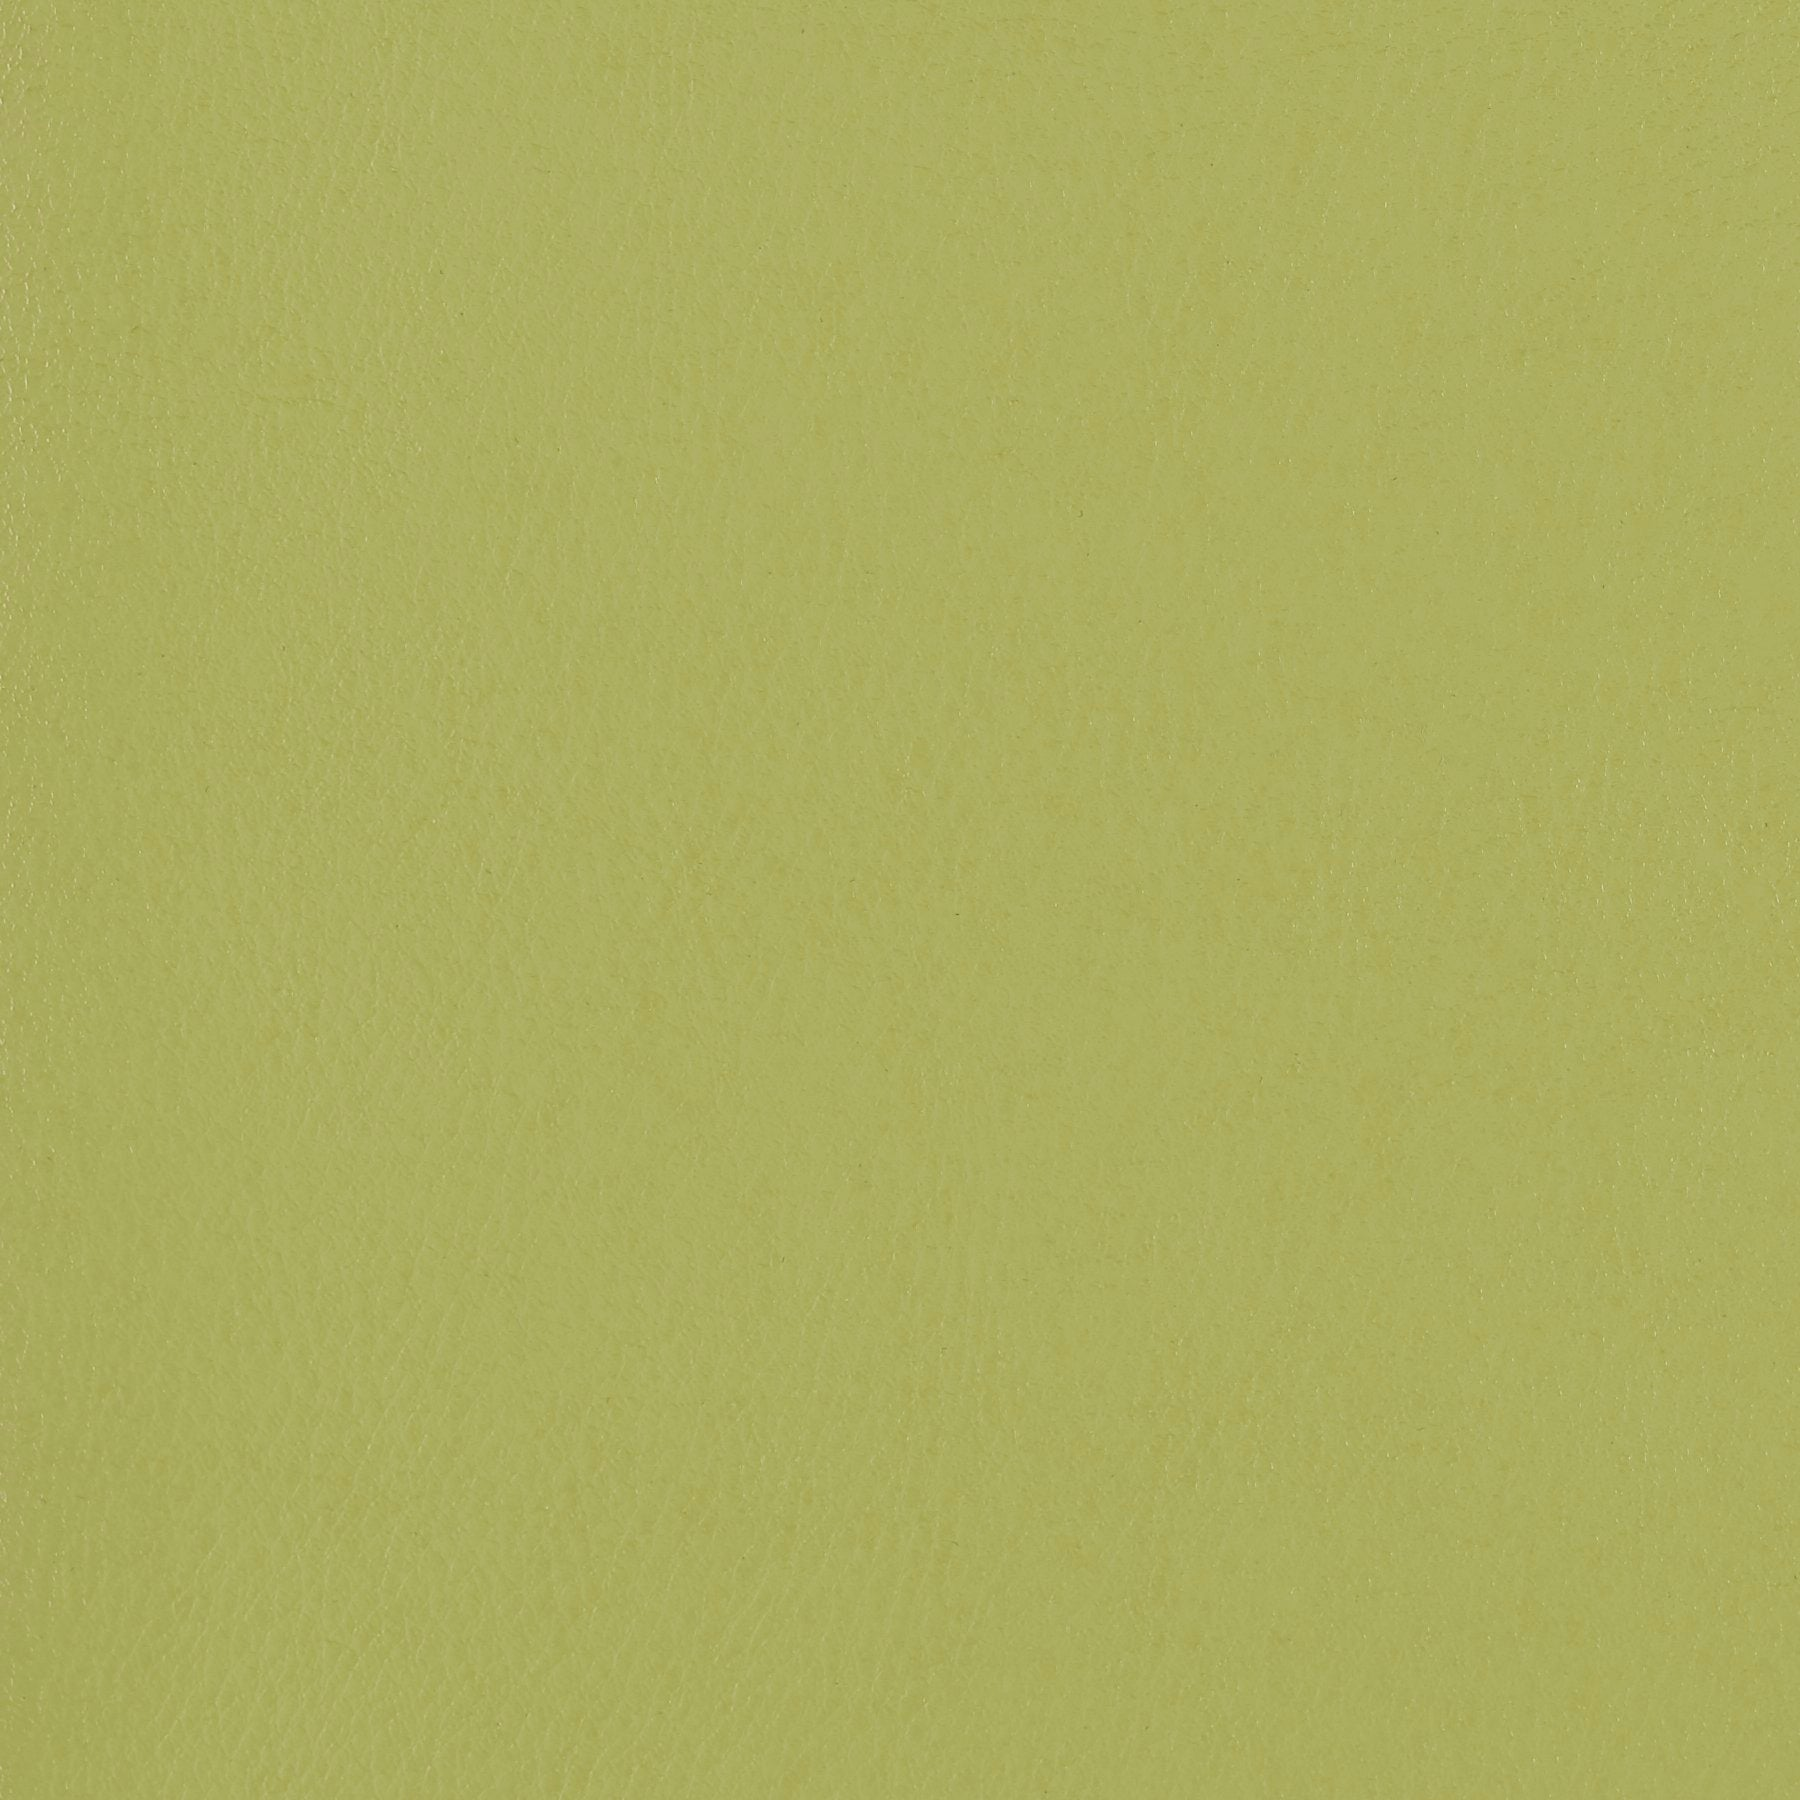 Fine Grain - Matcha Leaves - 4046 - 14